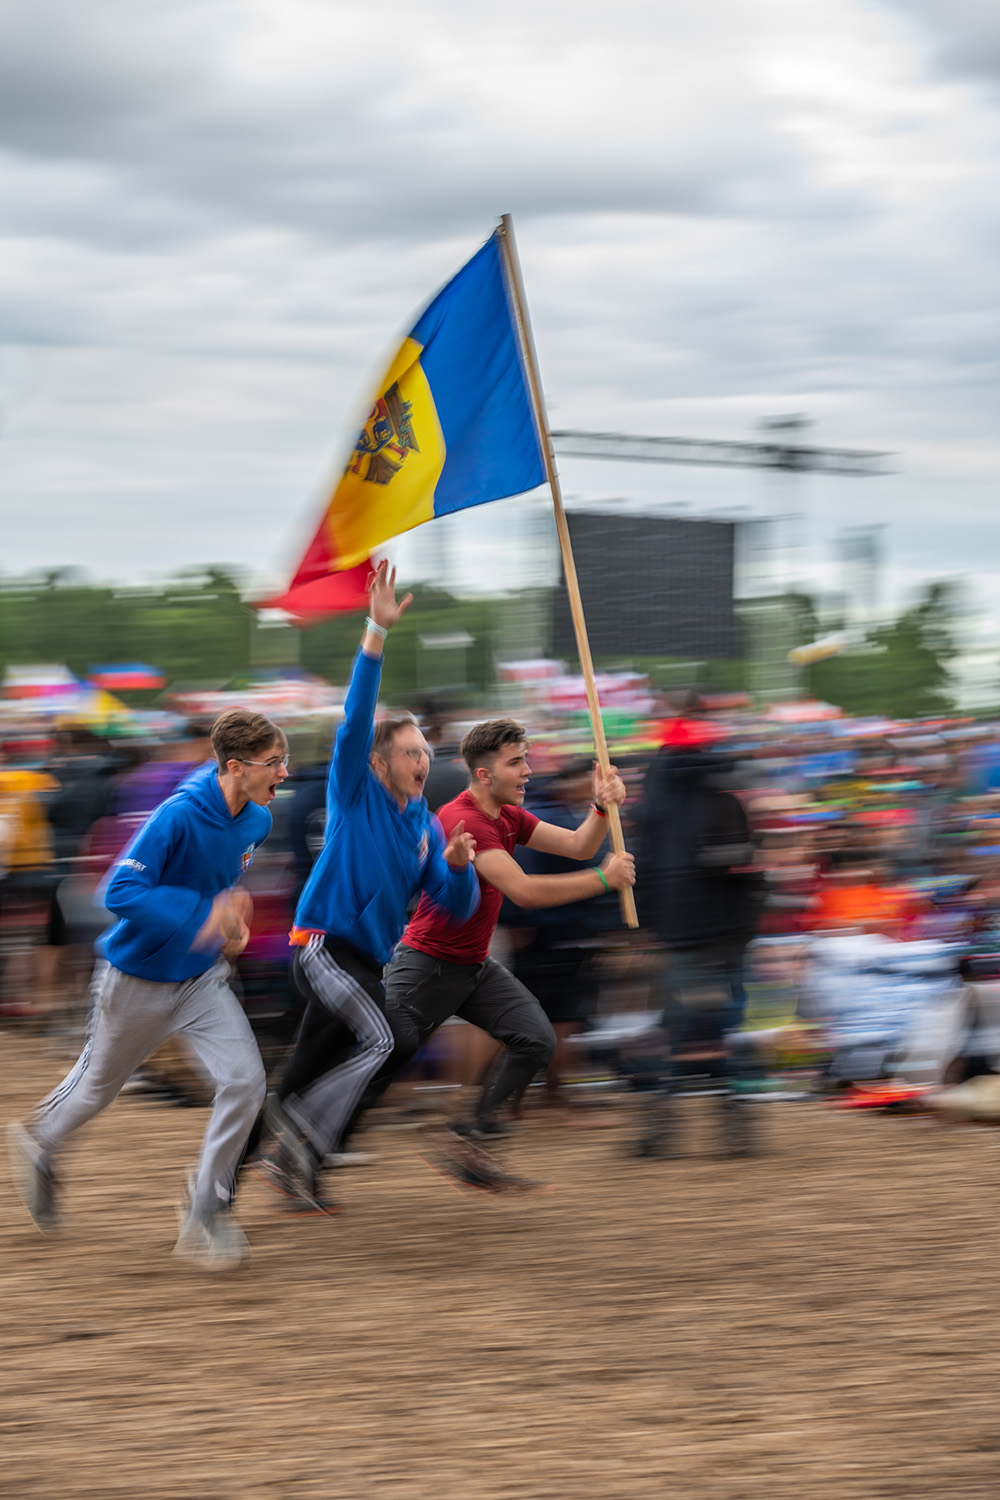 oshkosh 2019 mid res Pathfinders from Colombia run with flag before evening program James Bokovoy photo